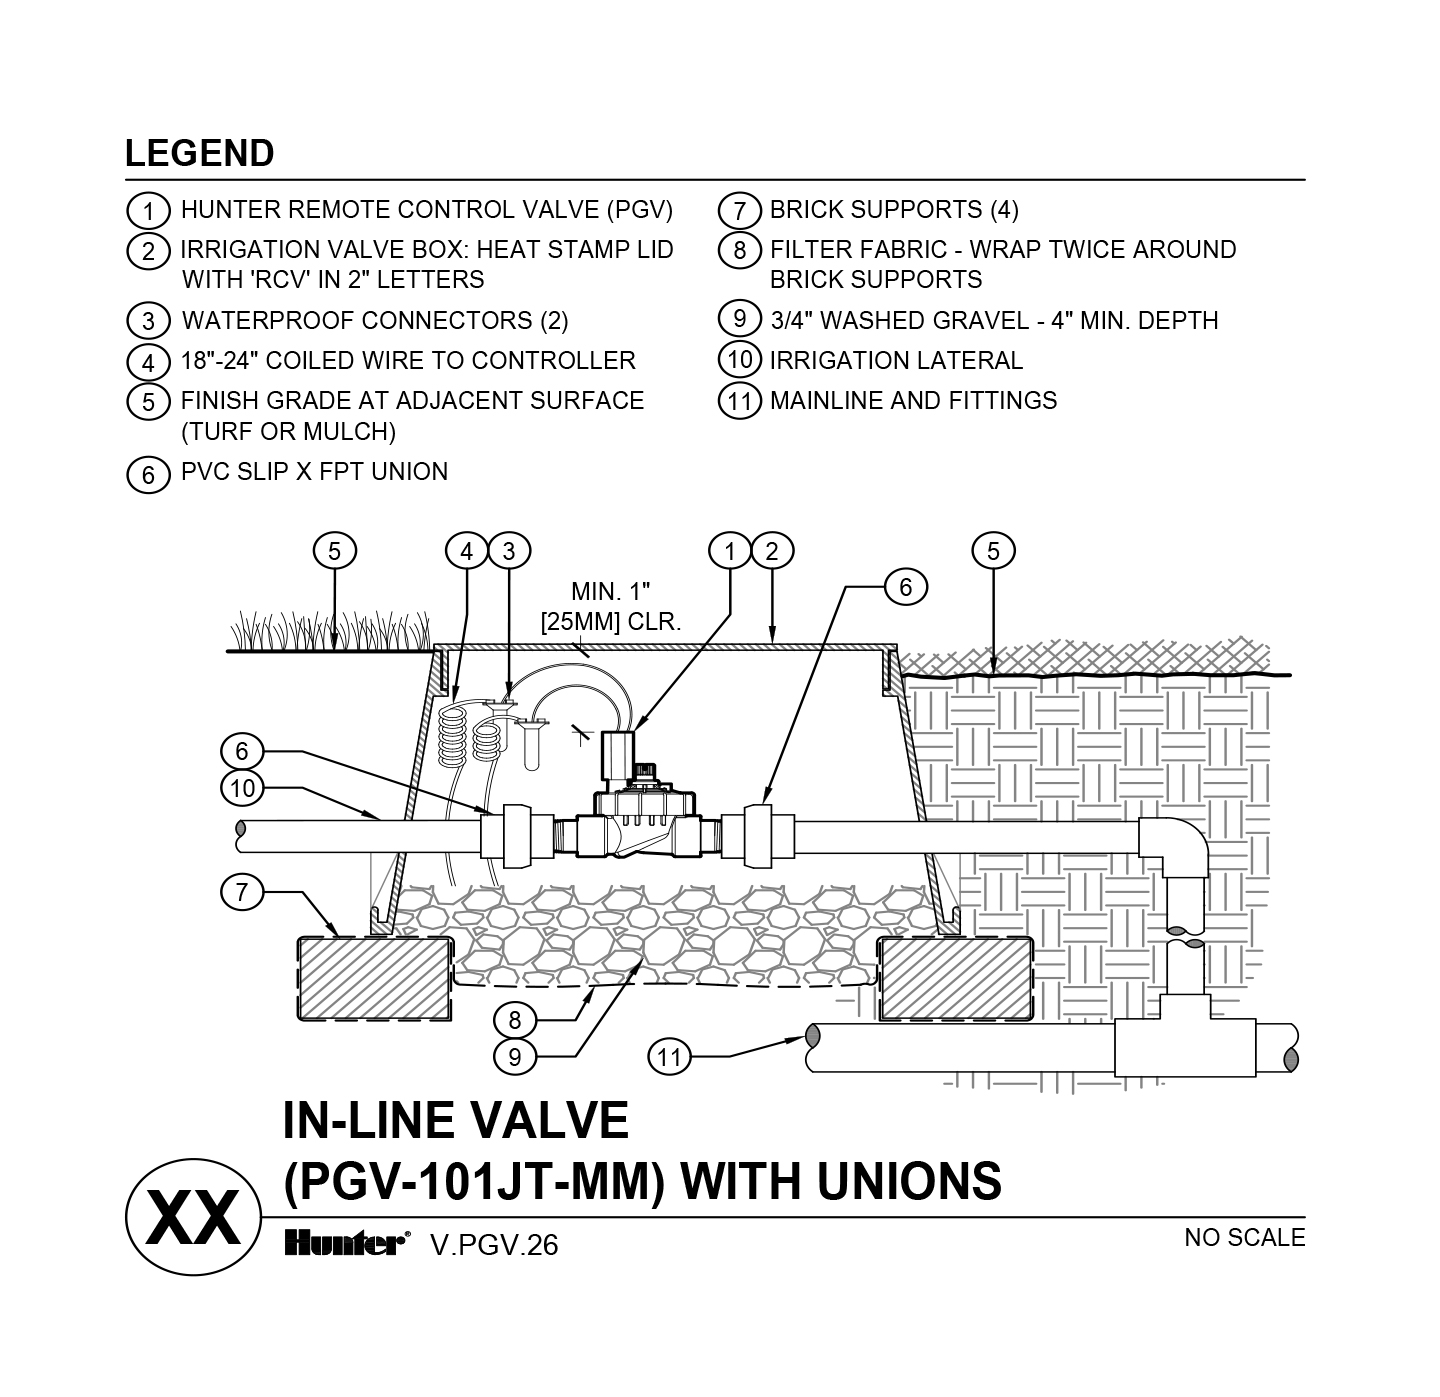 CAD - PGV-101JT-MM with unions